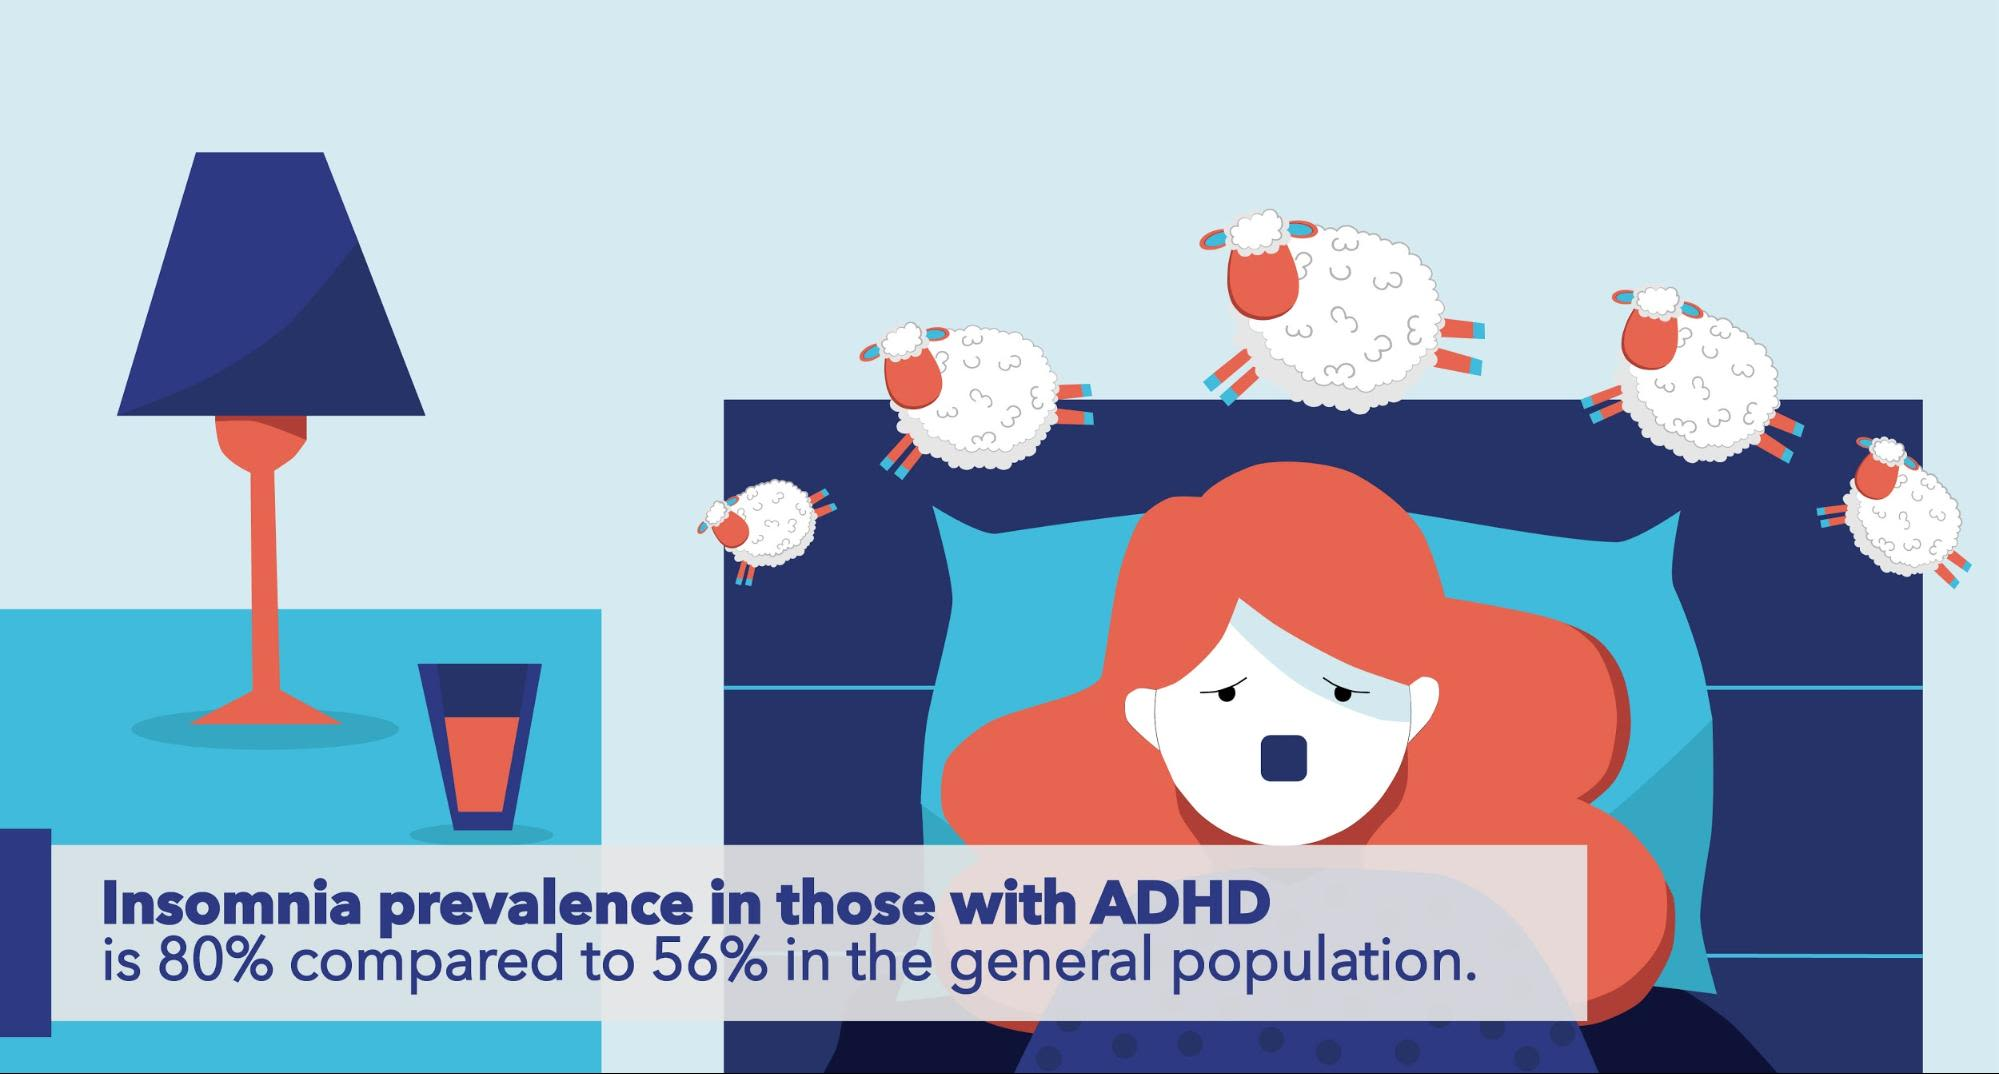 Insomnia prevalence in those with ADHD is 80% compared to 56% in the general population.